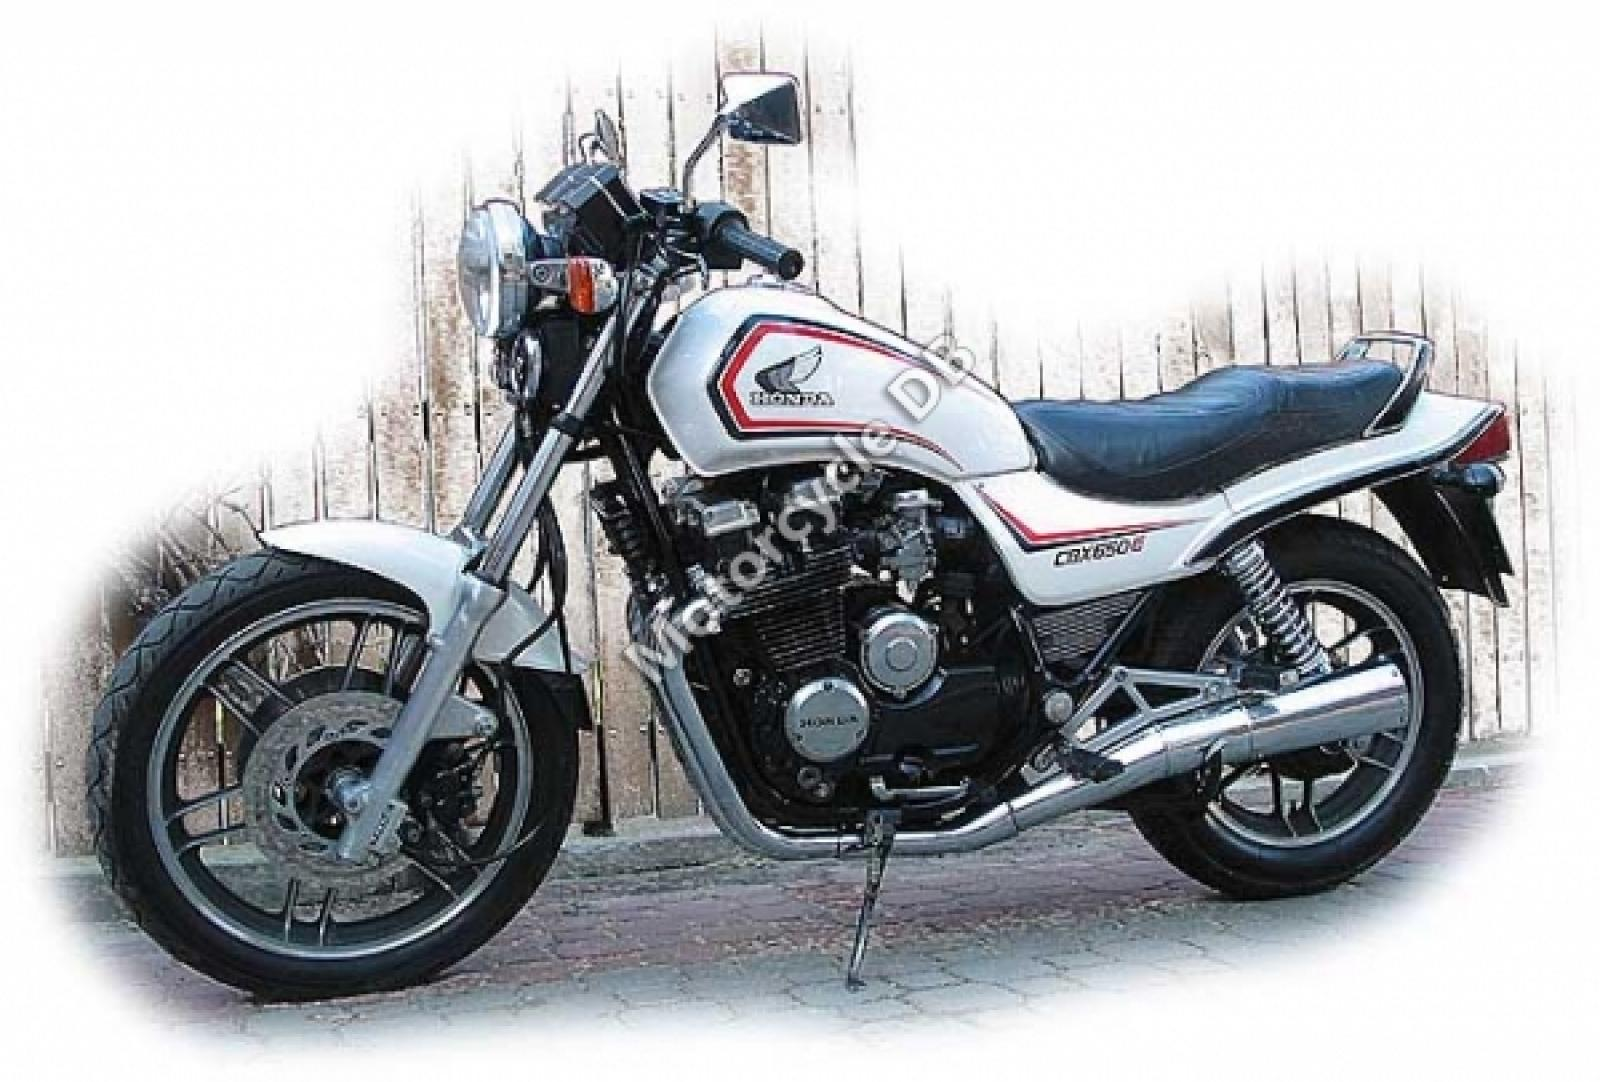 1983 Honda CBX650E (reduced effect) #9